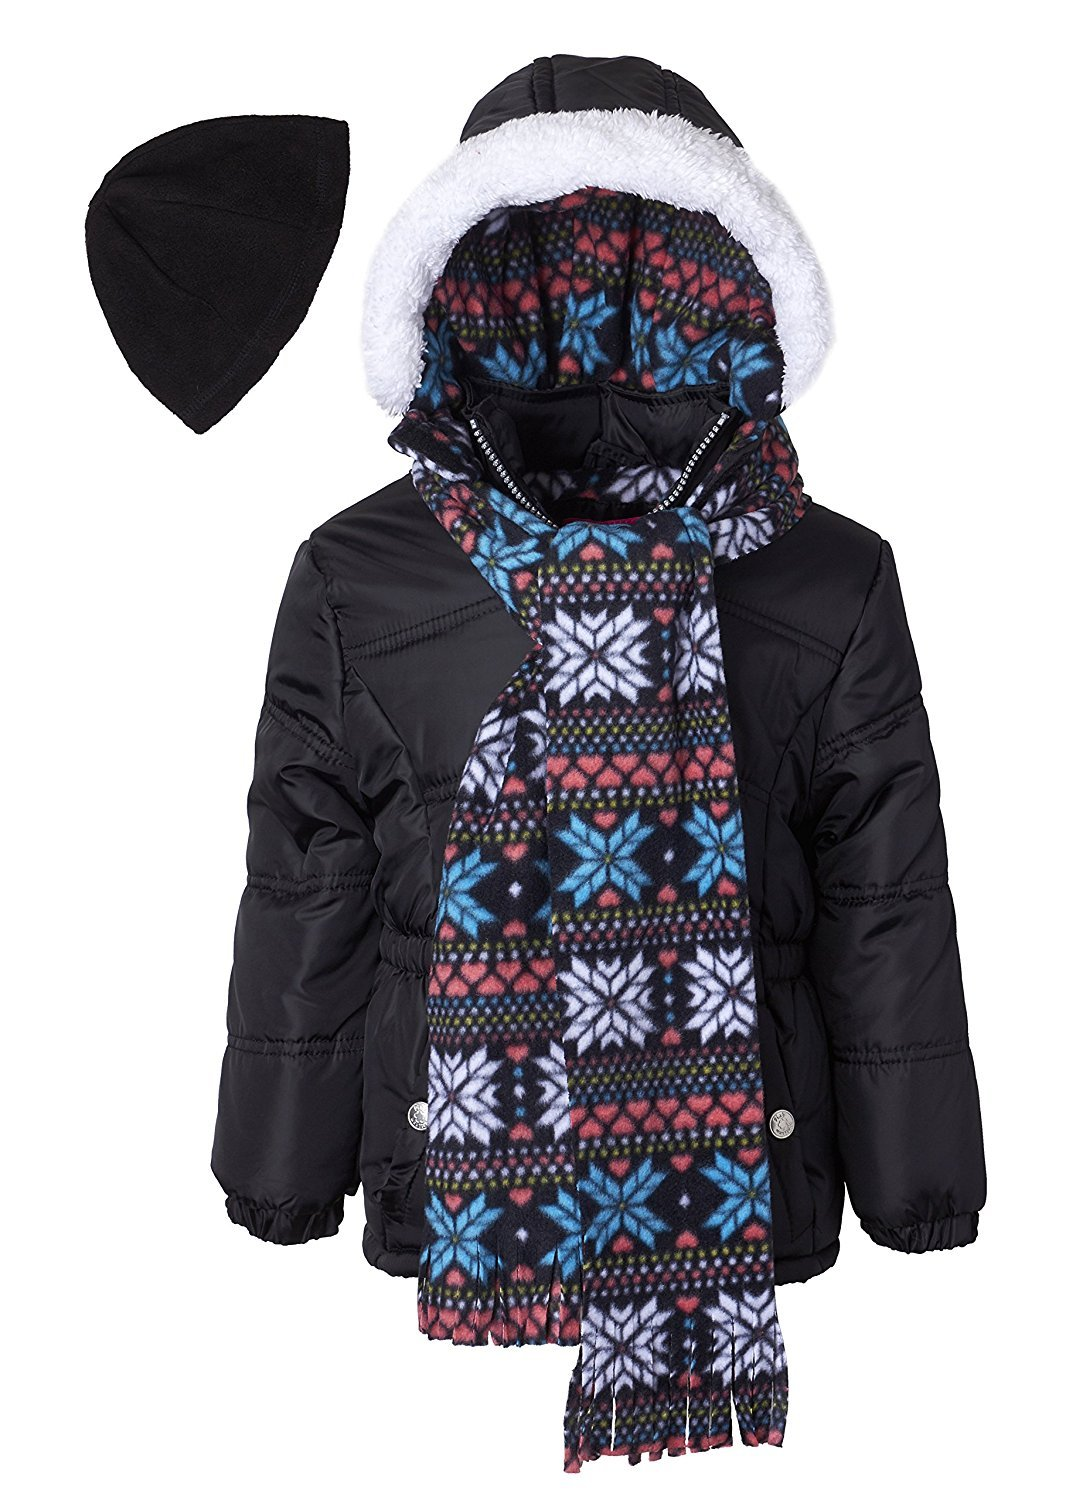 Pink Platinum Little Girls Hooded Winter Bubble Jacket Coat Matching Hat & Scarf, Black, 3T